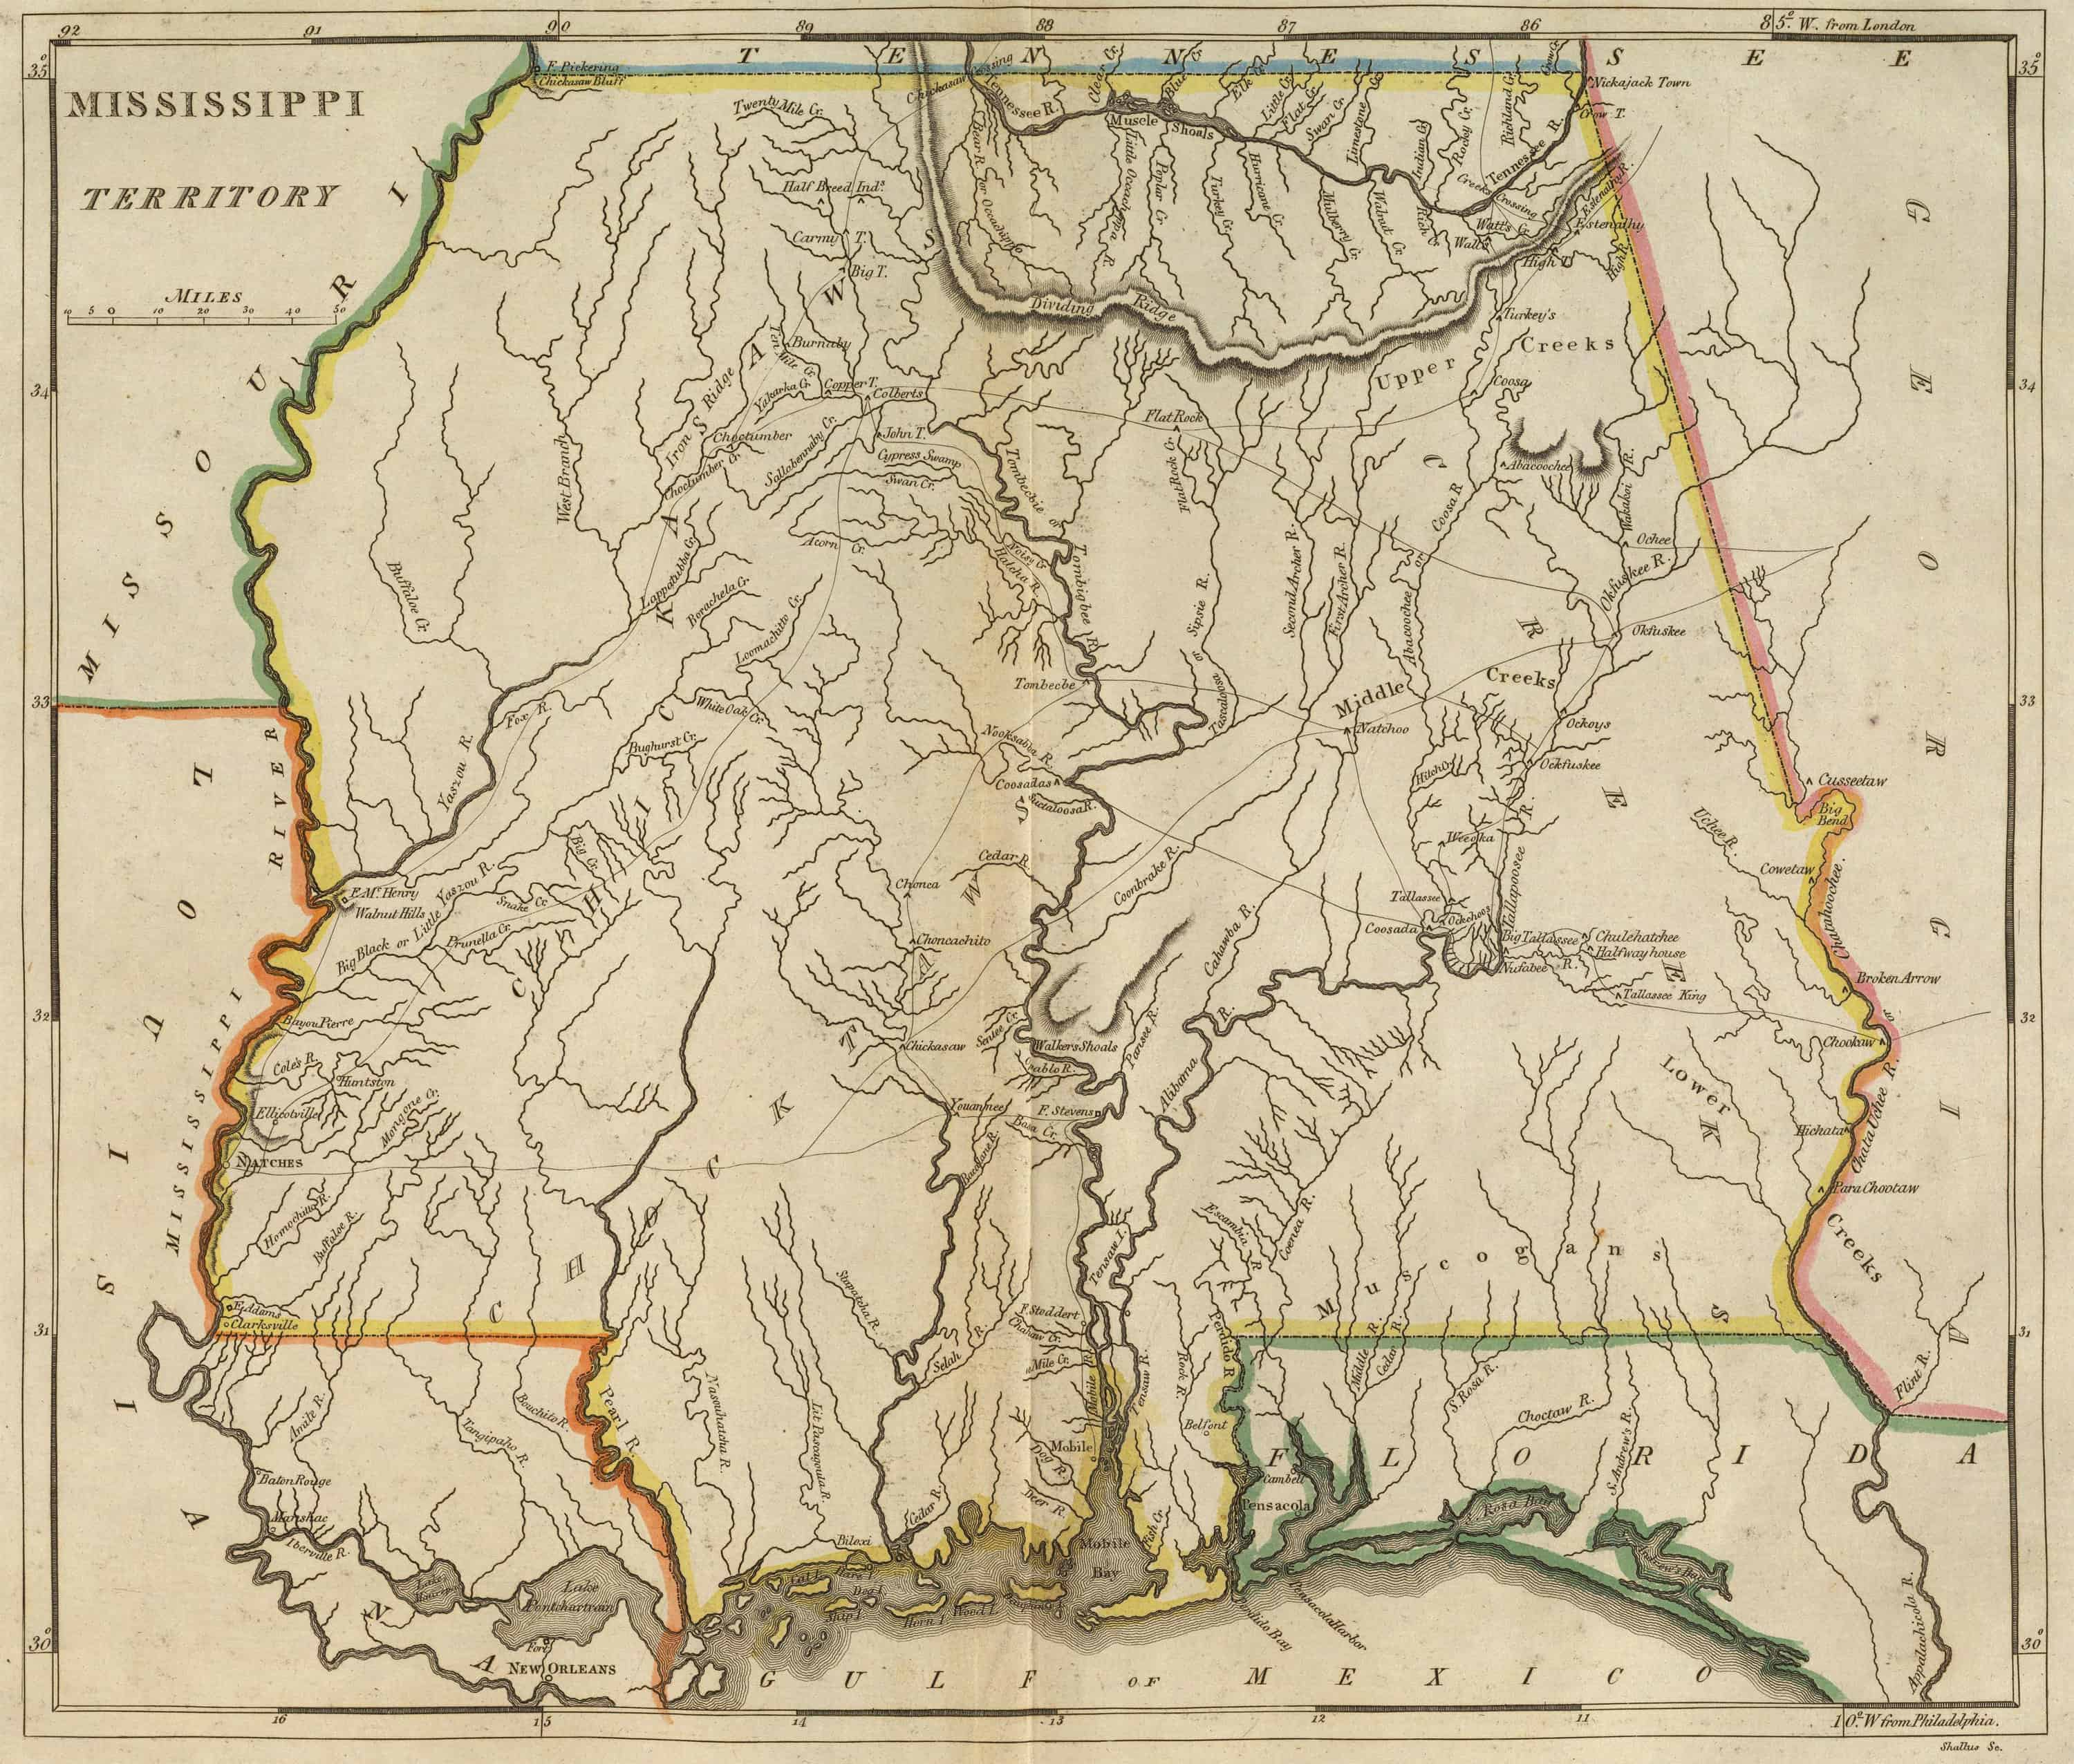 Old Historical City, County and State Maps of Alabama on map of ecuador cities towns and provinces, map of alabama coast, map of alabama showing cities, map showing alabama counties, map of england counties and cities, map of connecticut towns, map of cape cod towns, map of colorado counties and cities, map of mexico cities and towns, map of world with latitude and longitude, map of europe with cities, map of massachusetts towns and cities, map of ms towns and cities, map of al, map of ct towns with names, map of china with cities, map of ghana with towns, map of canada with cities, map of maine towns, map of ireland counties and cities,